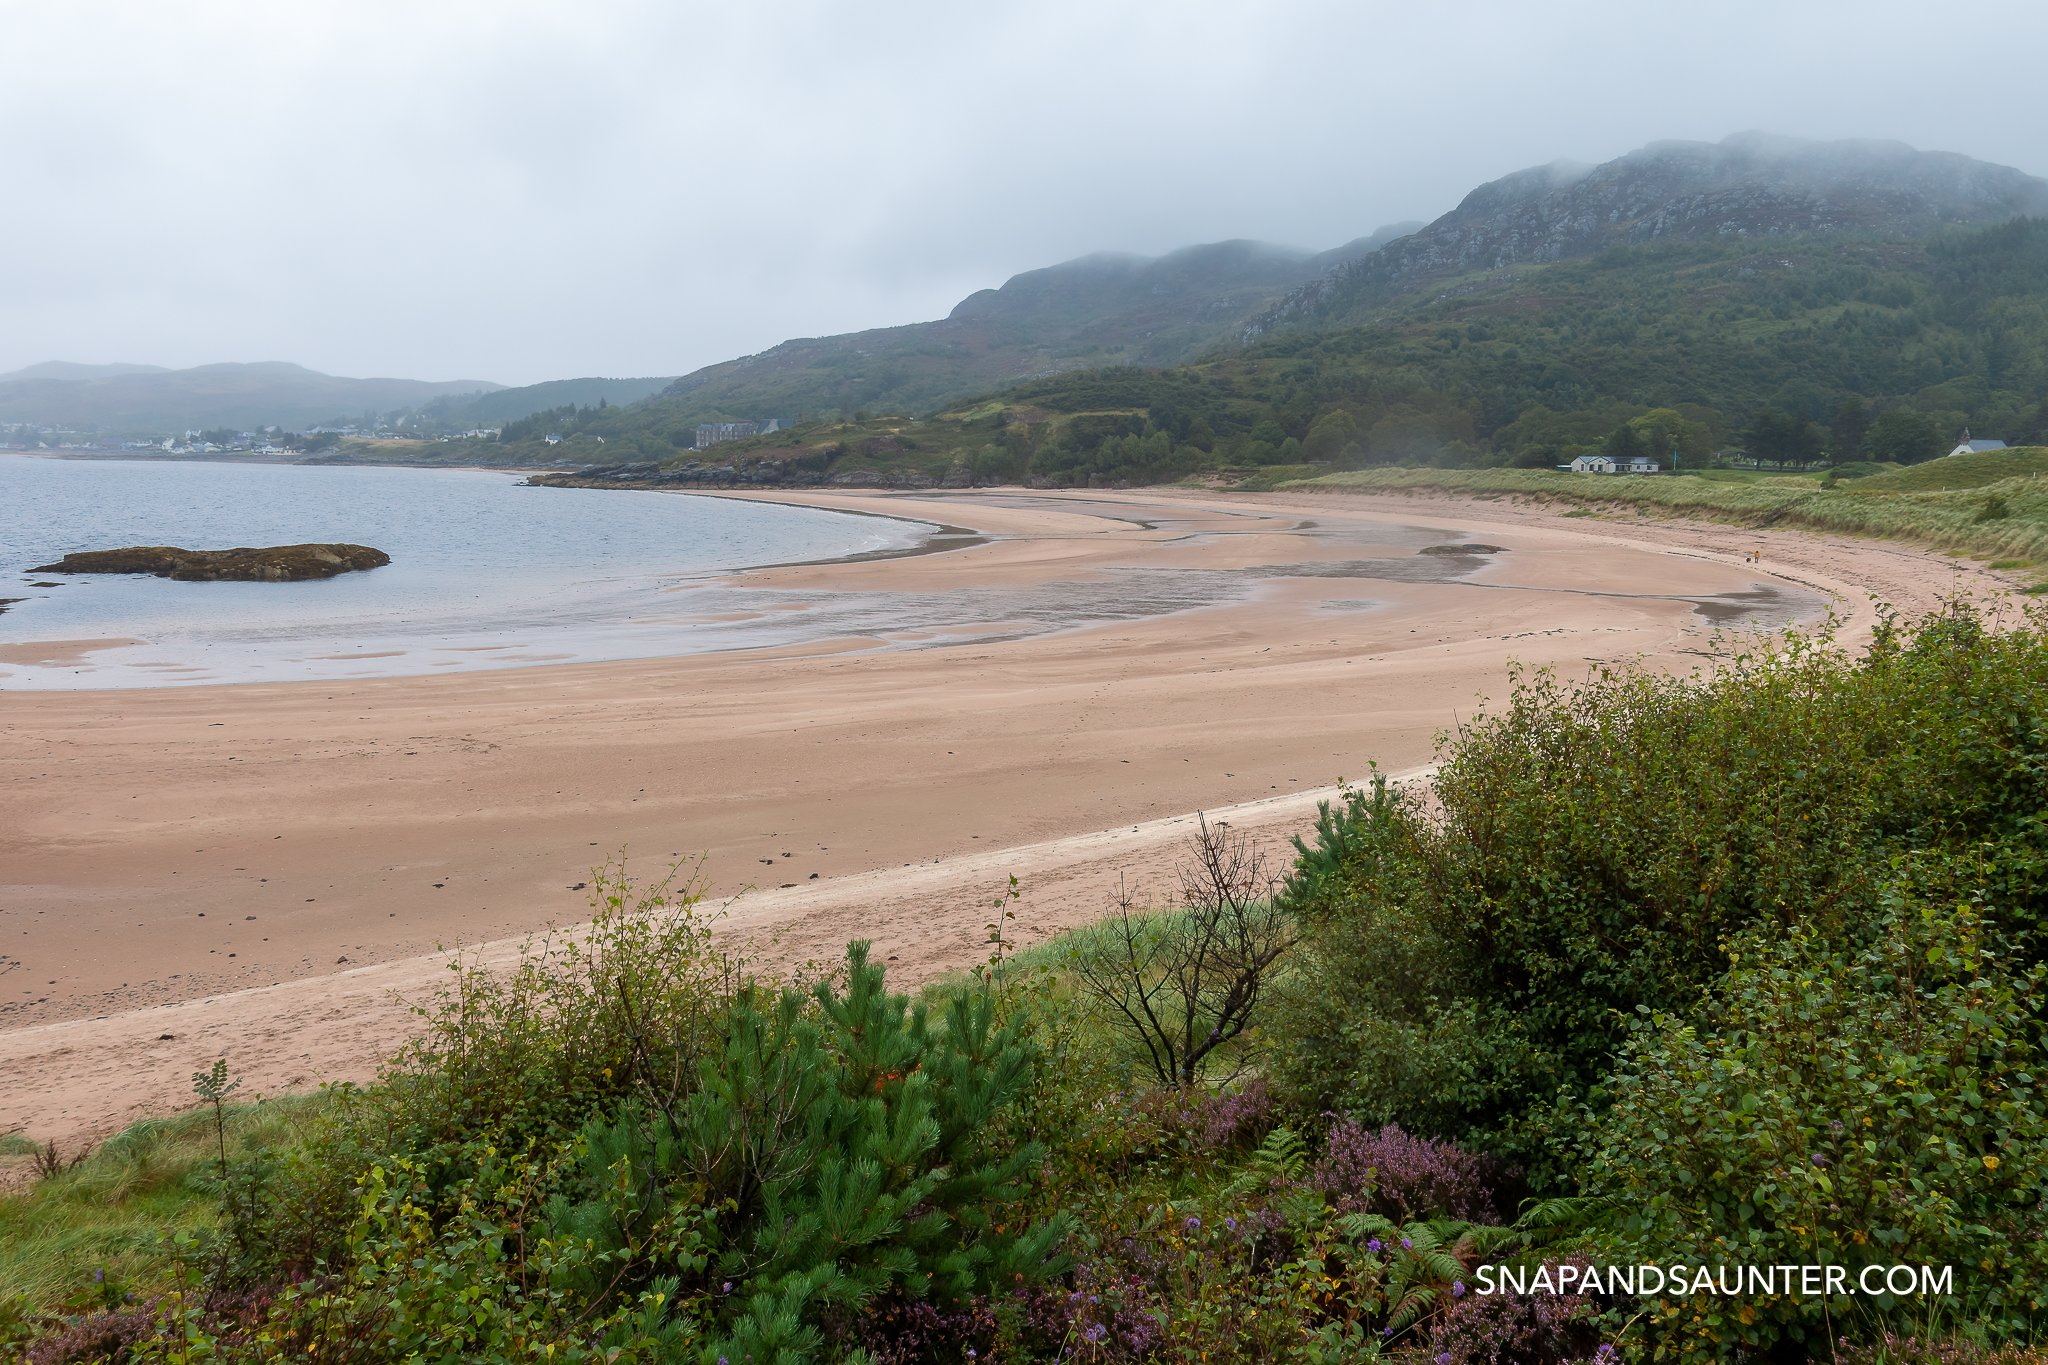 Gairloch beach on North Coast 500 route in Scotland